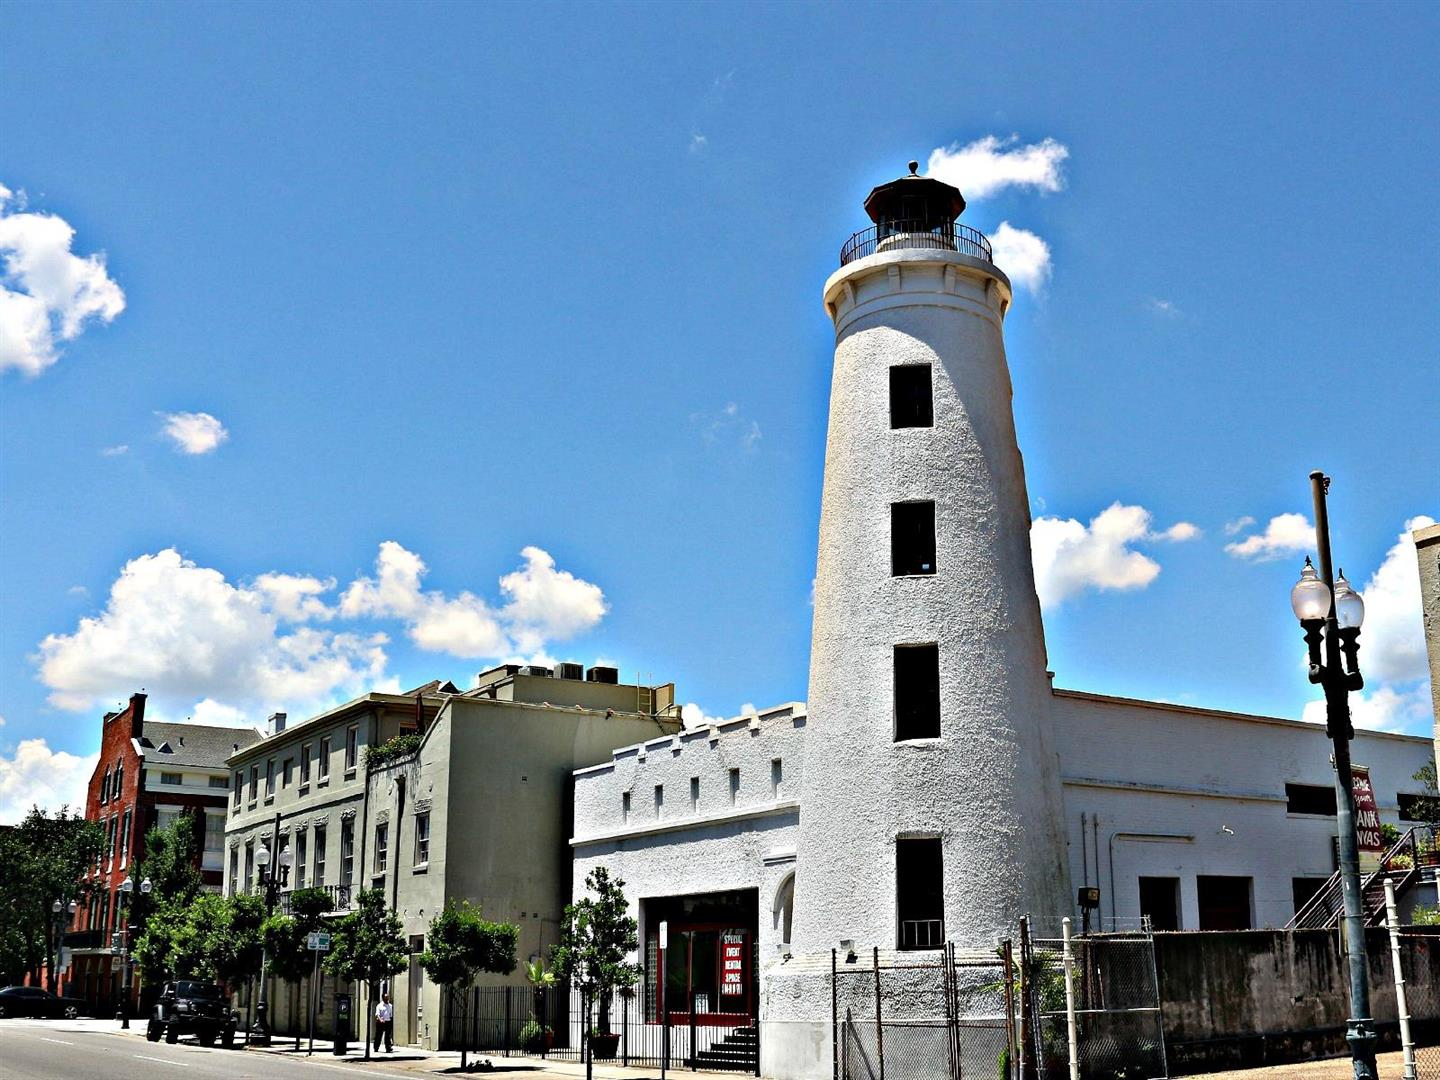 WarehouseDistrictWalking,LightHouse.jpg